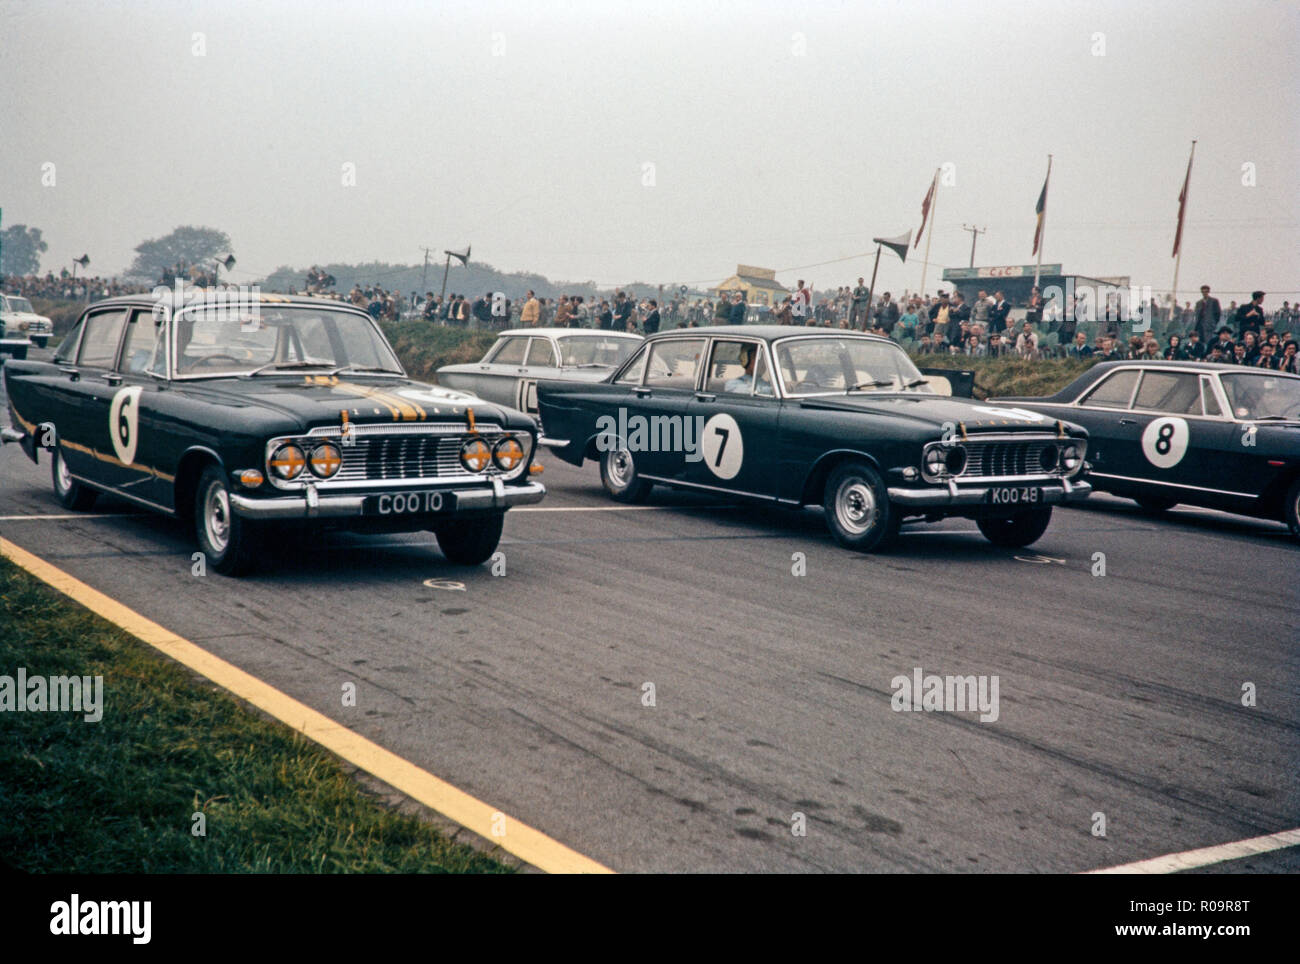 Motor racing at the Brands Hatch circuit in England in the early 1960s. Shown are two Ford Zodiac cars, number 6 and 7. Photo of the starting grid, just  prior to the race starting. - Stock Image